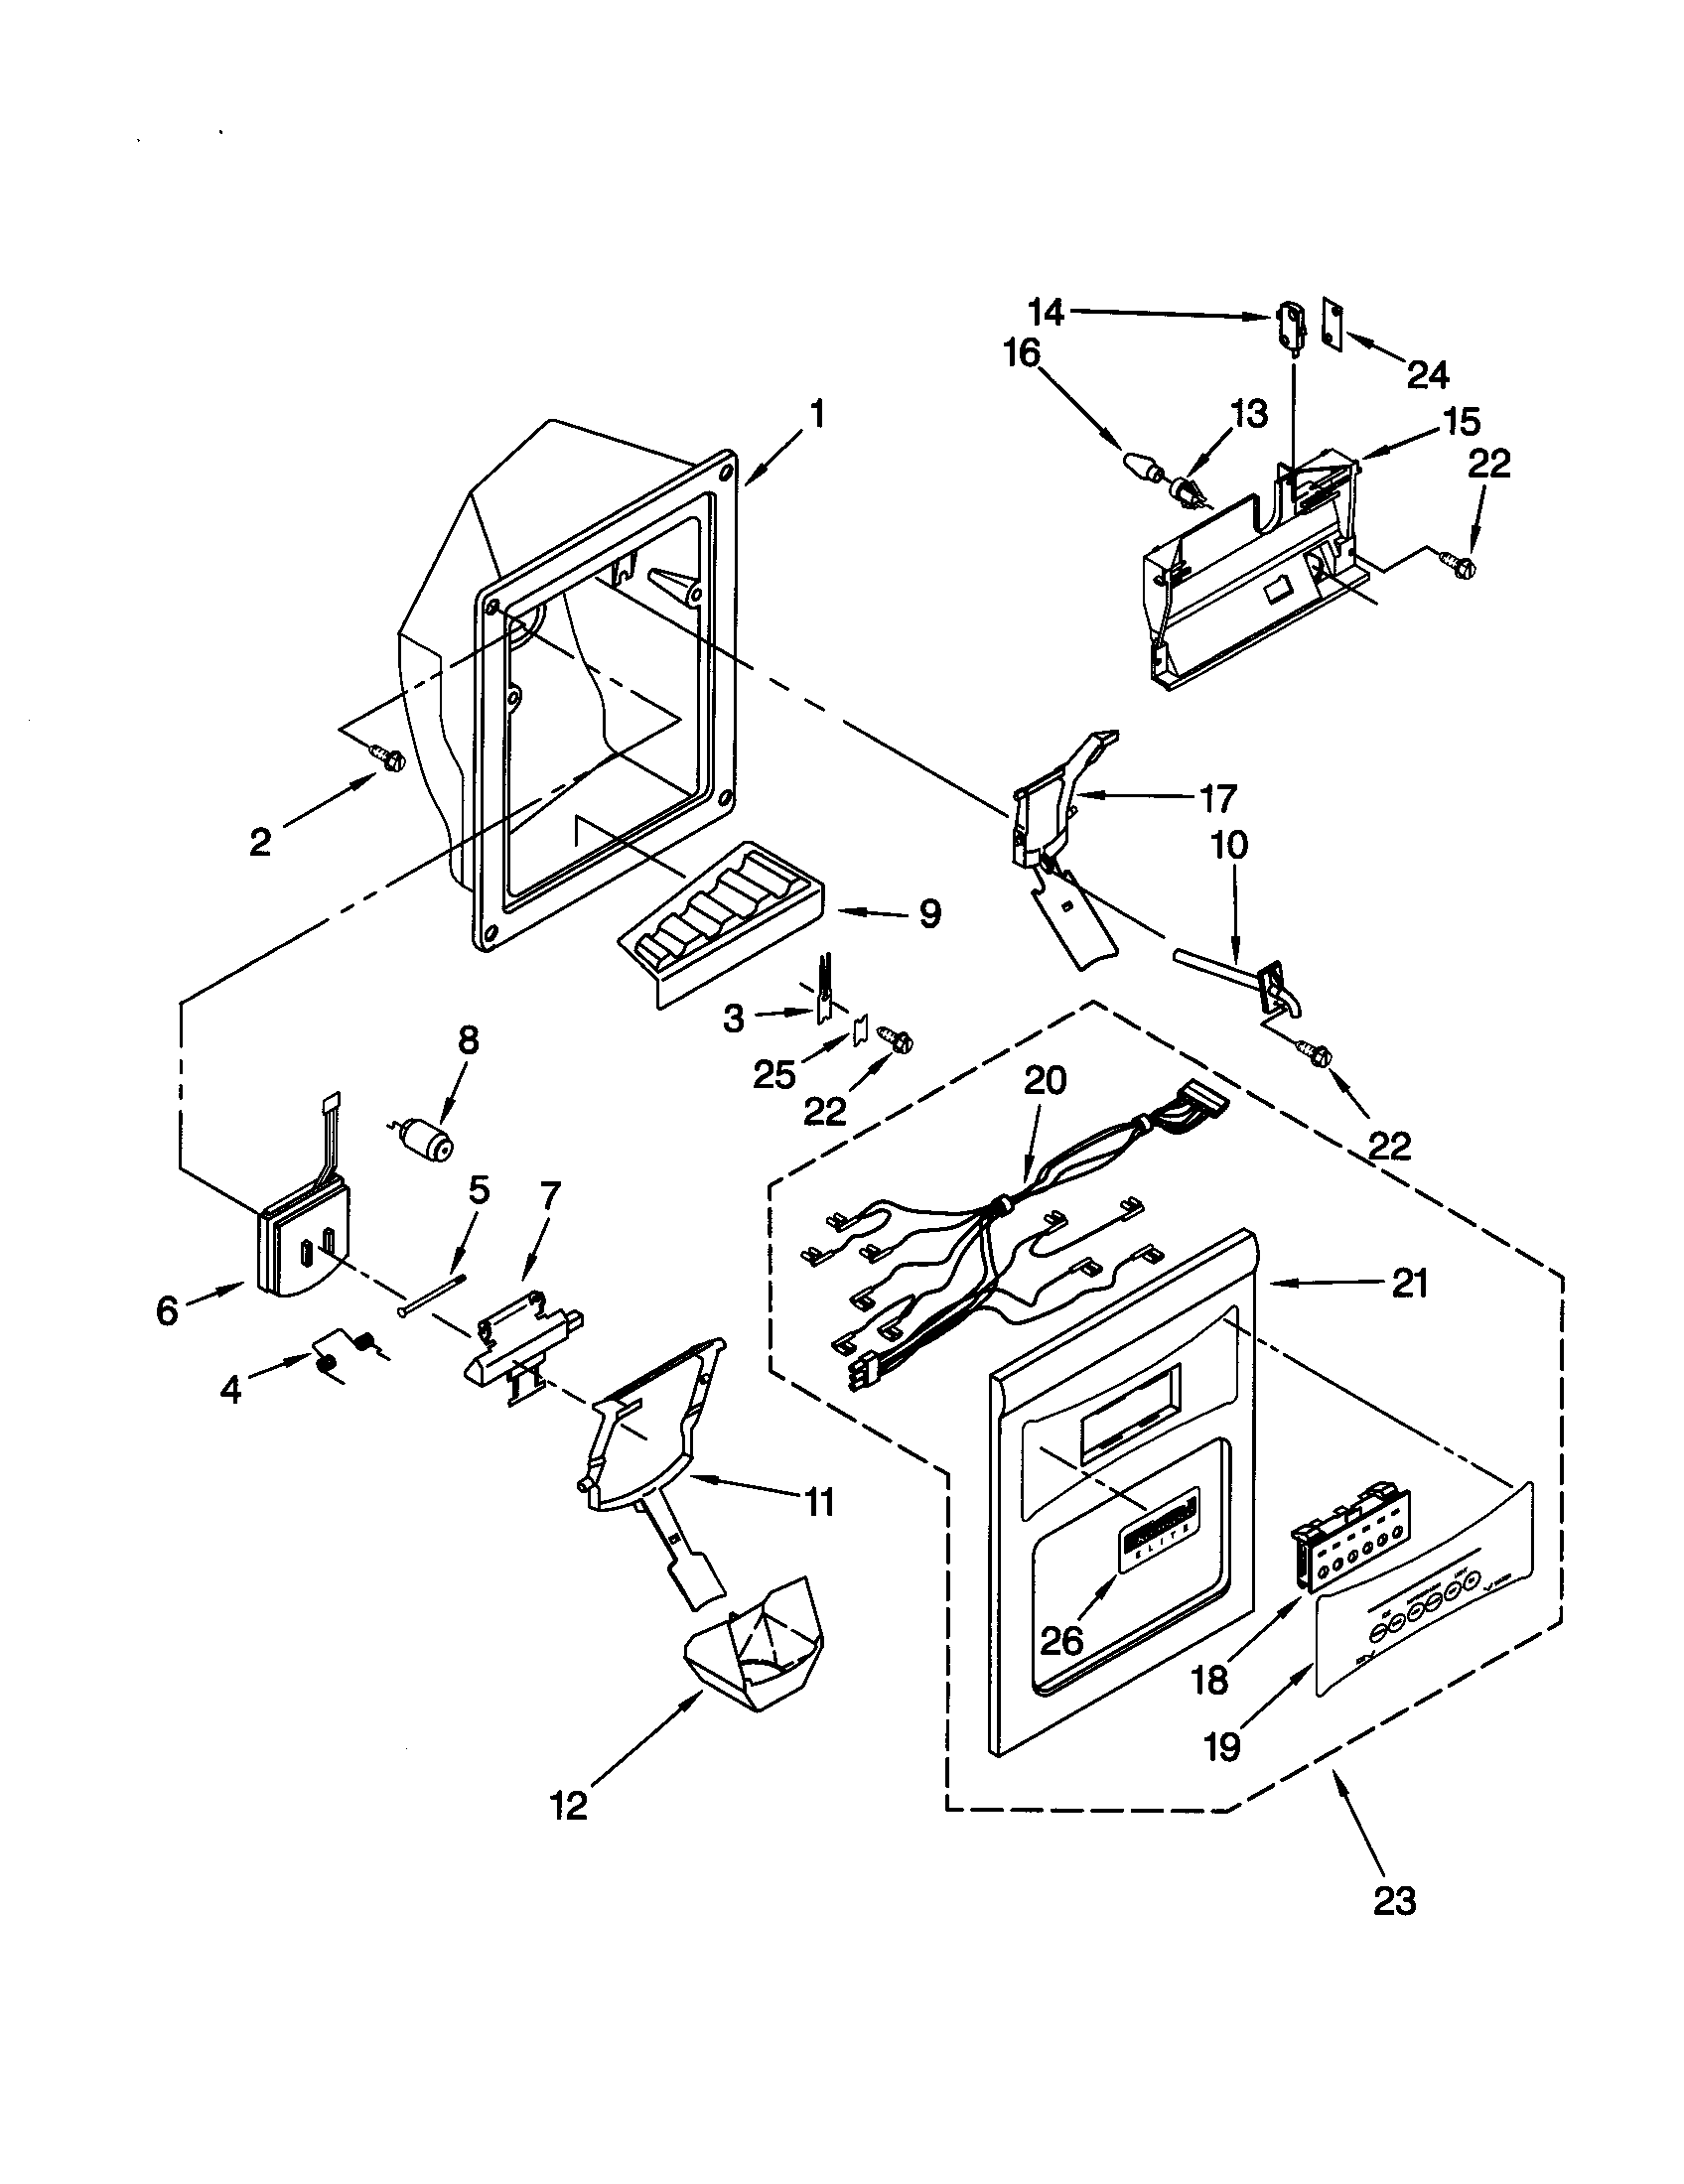 DISPENSER FRONT Diagram & Parts List for Model 10650593000